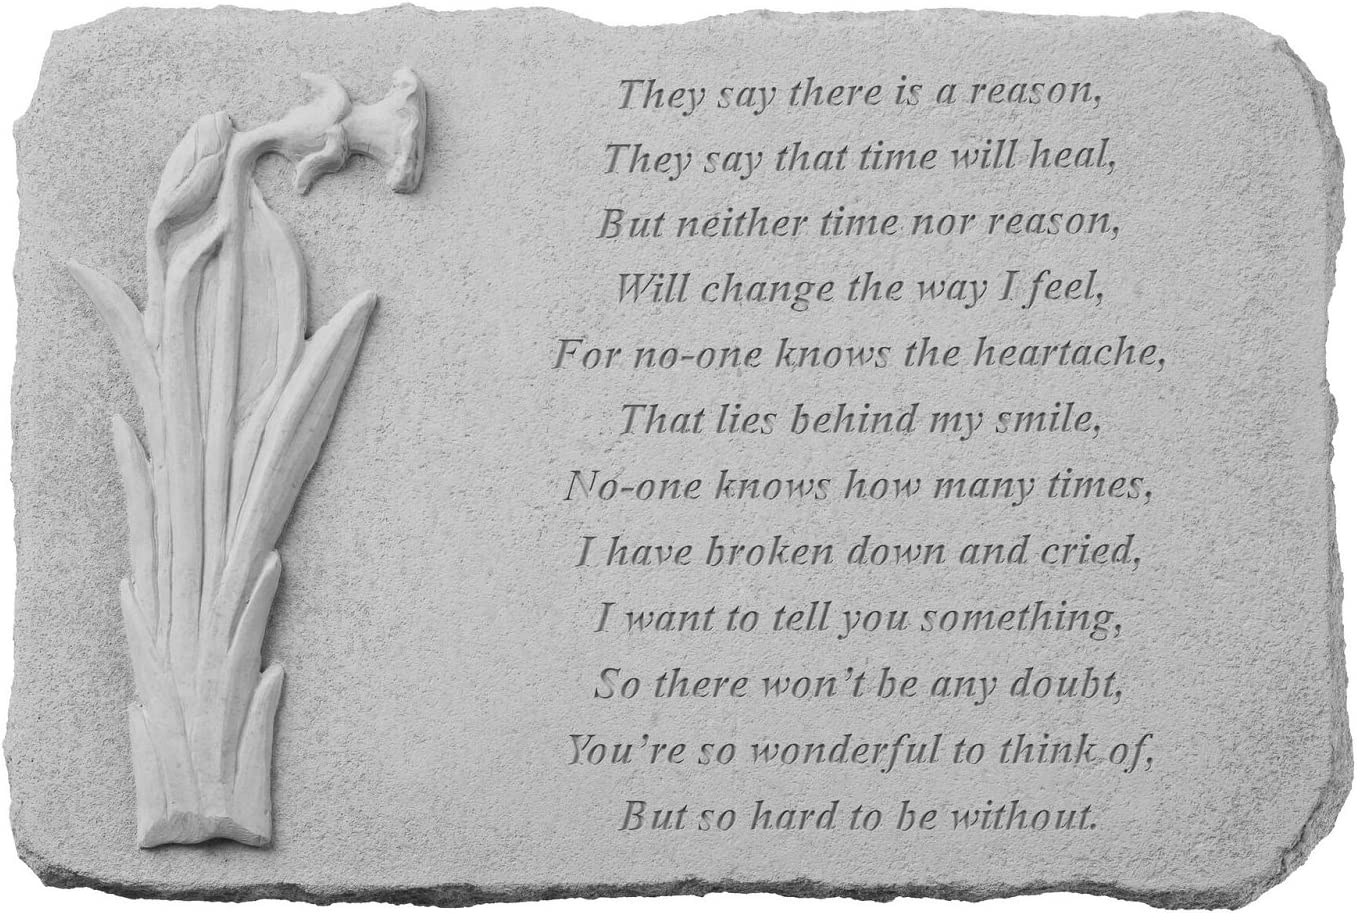 "Kay Berry 7572"" They Say There is A Reason… with Daffodil Decorative Stone, Multicolor"